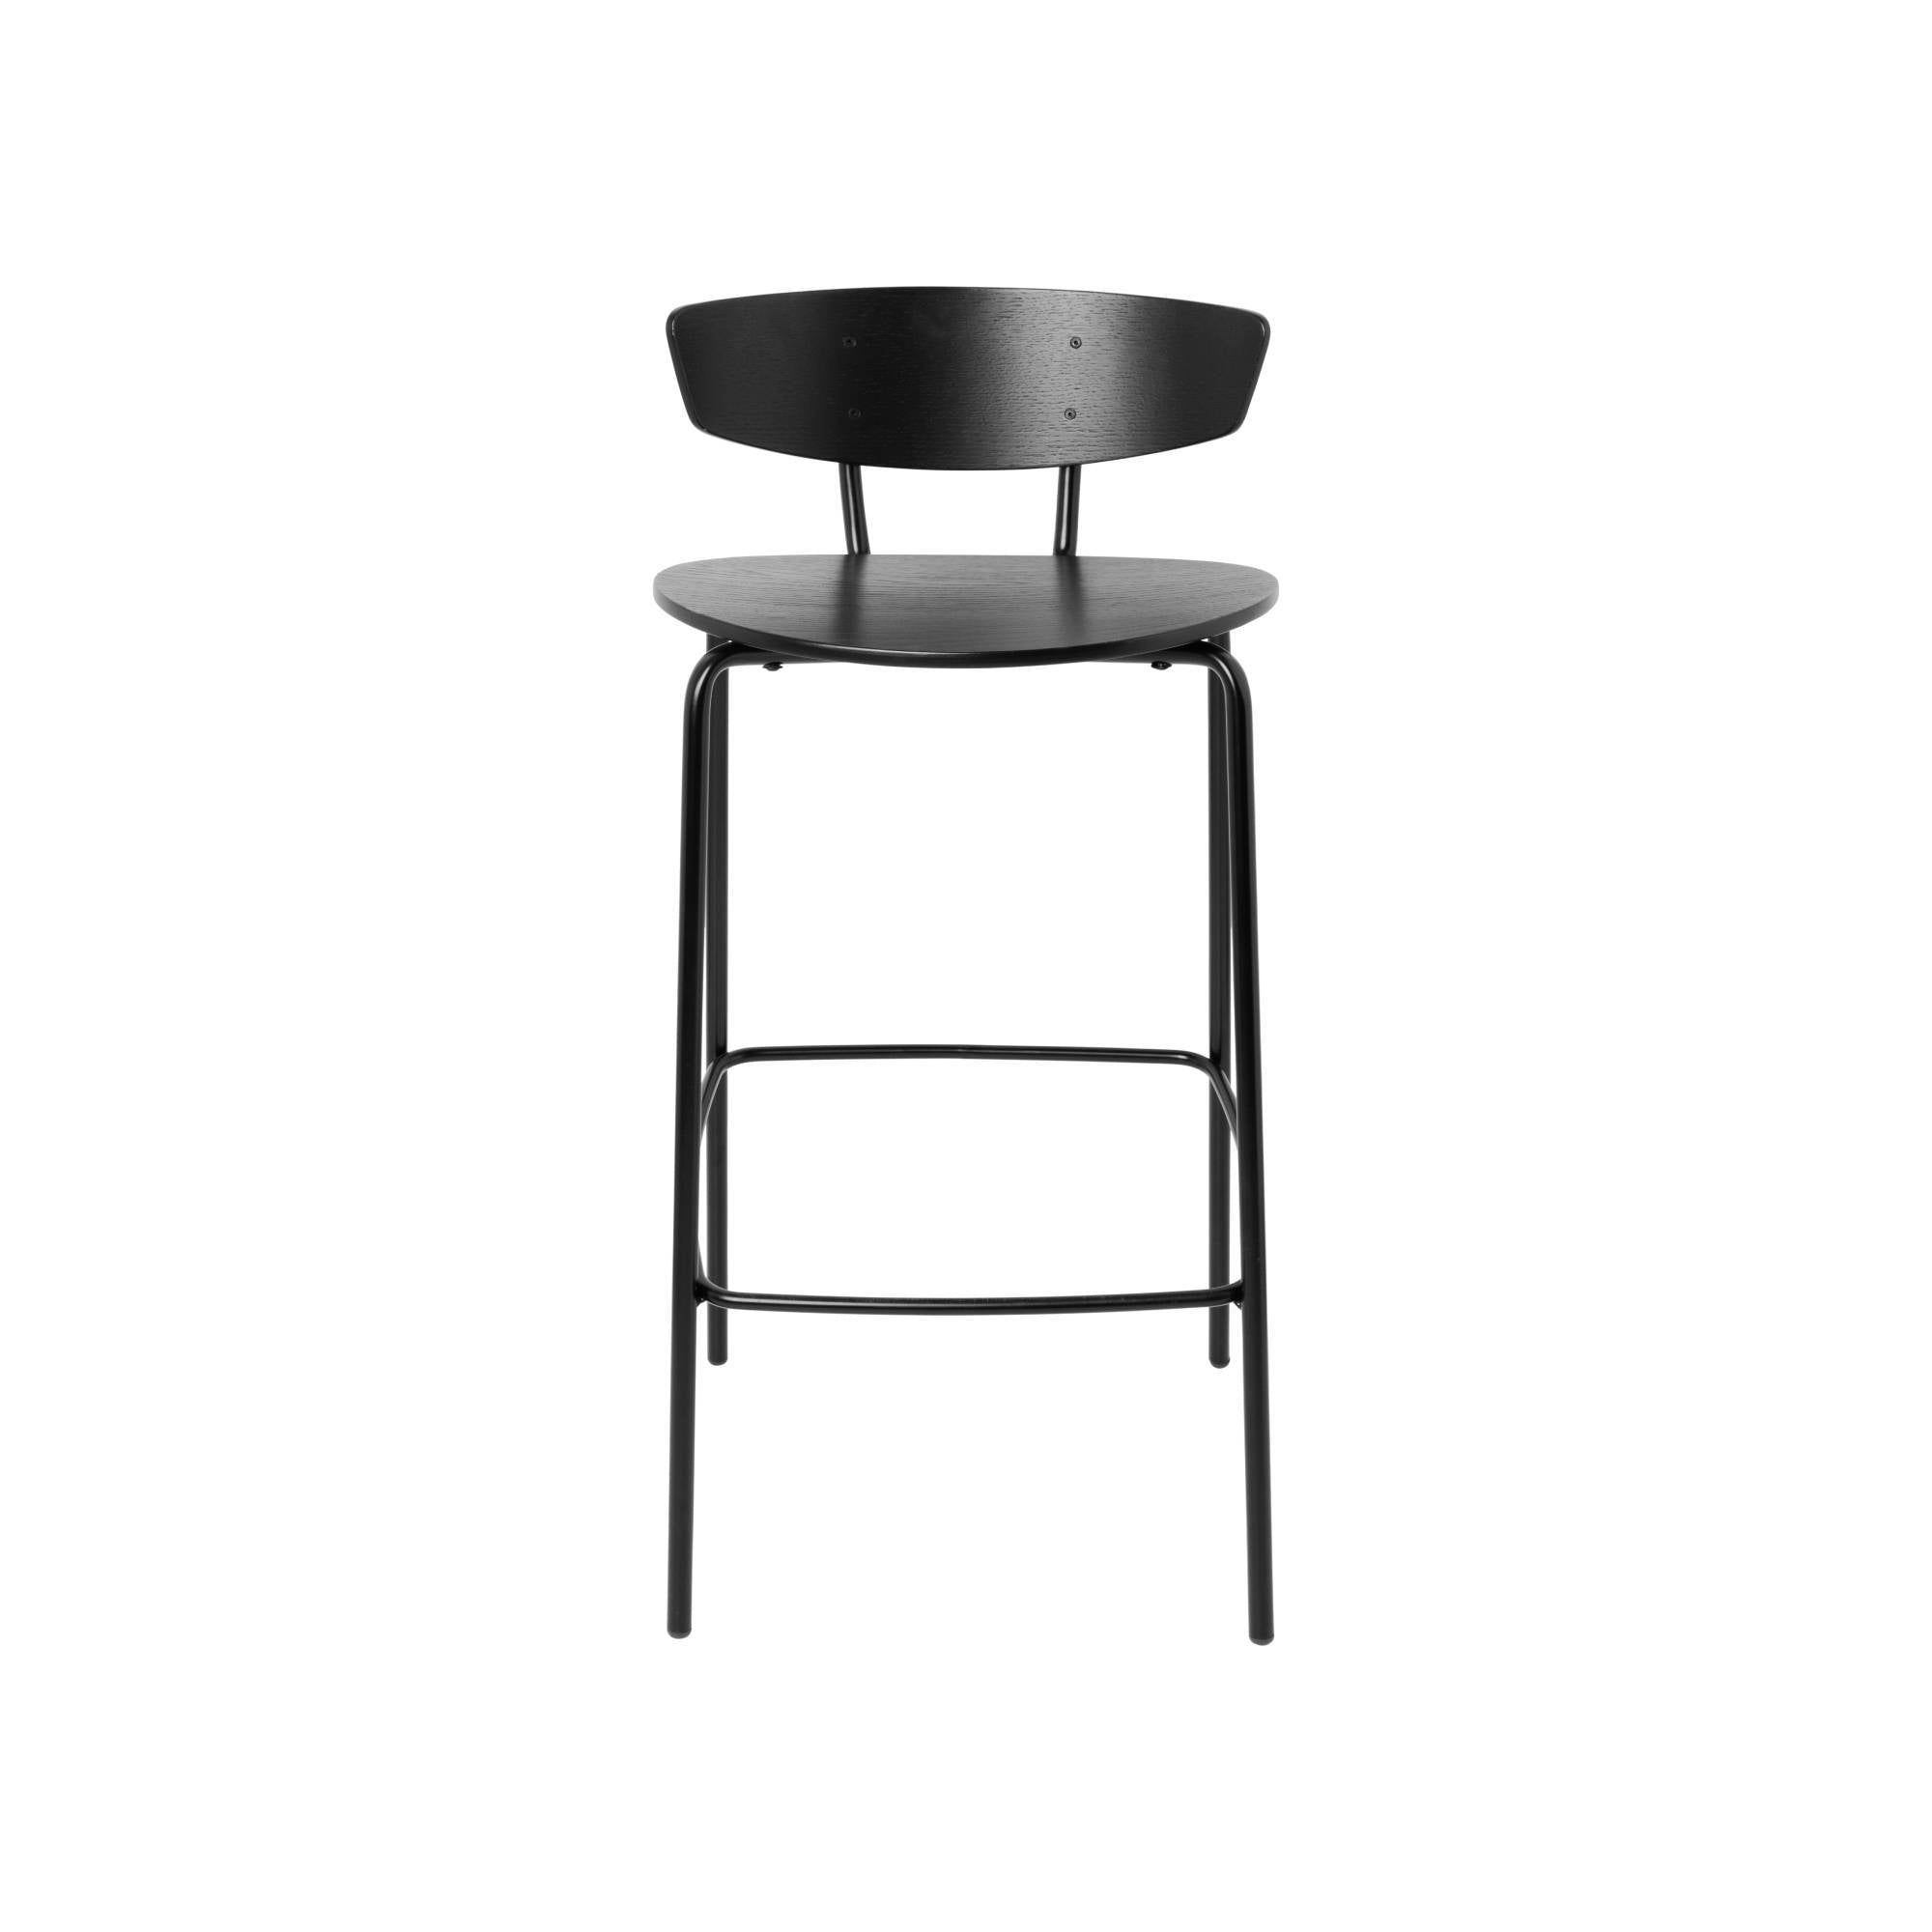 Herman Bar Chair: Black + Low